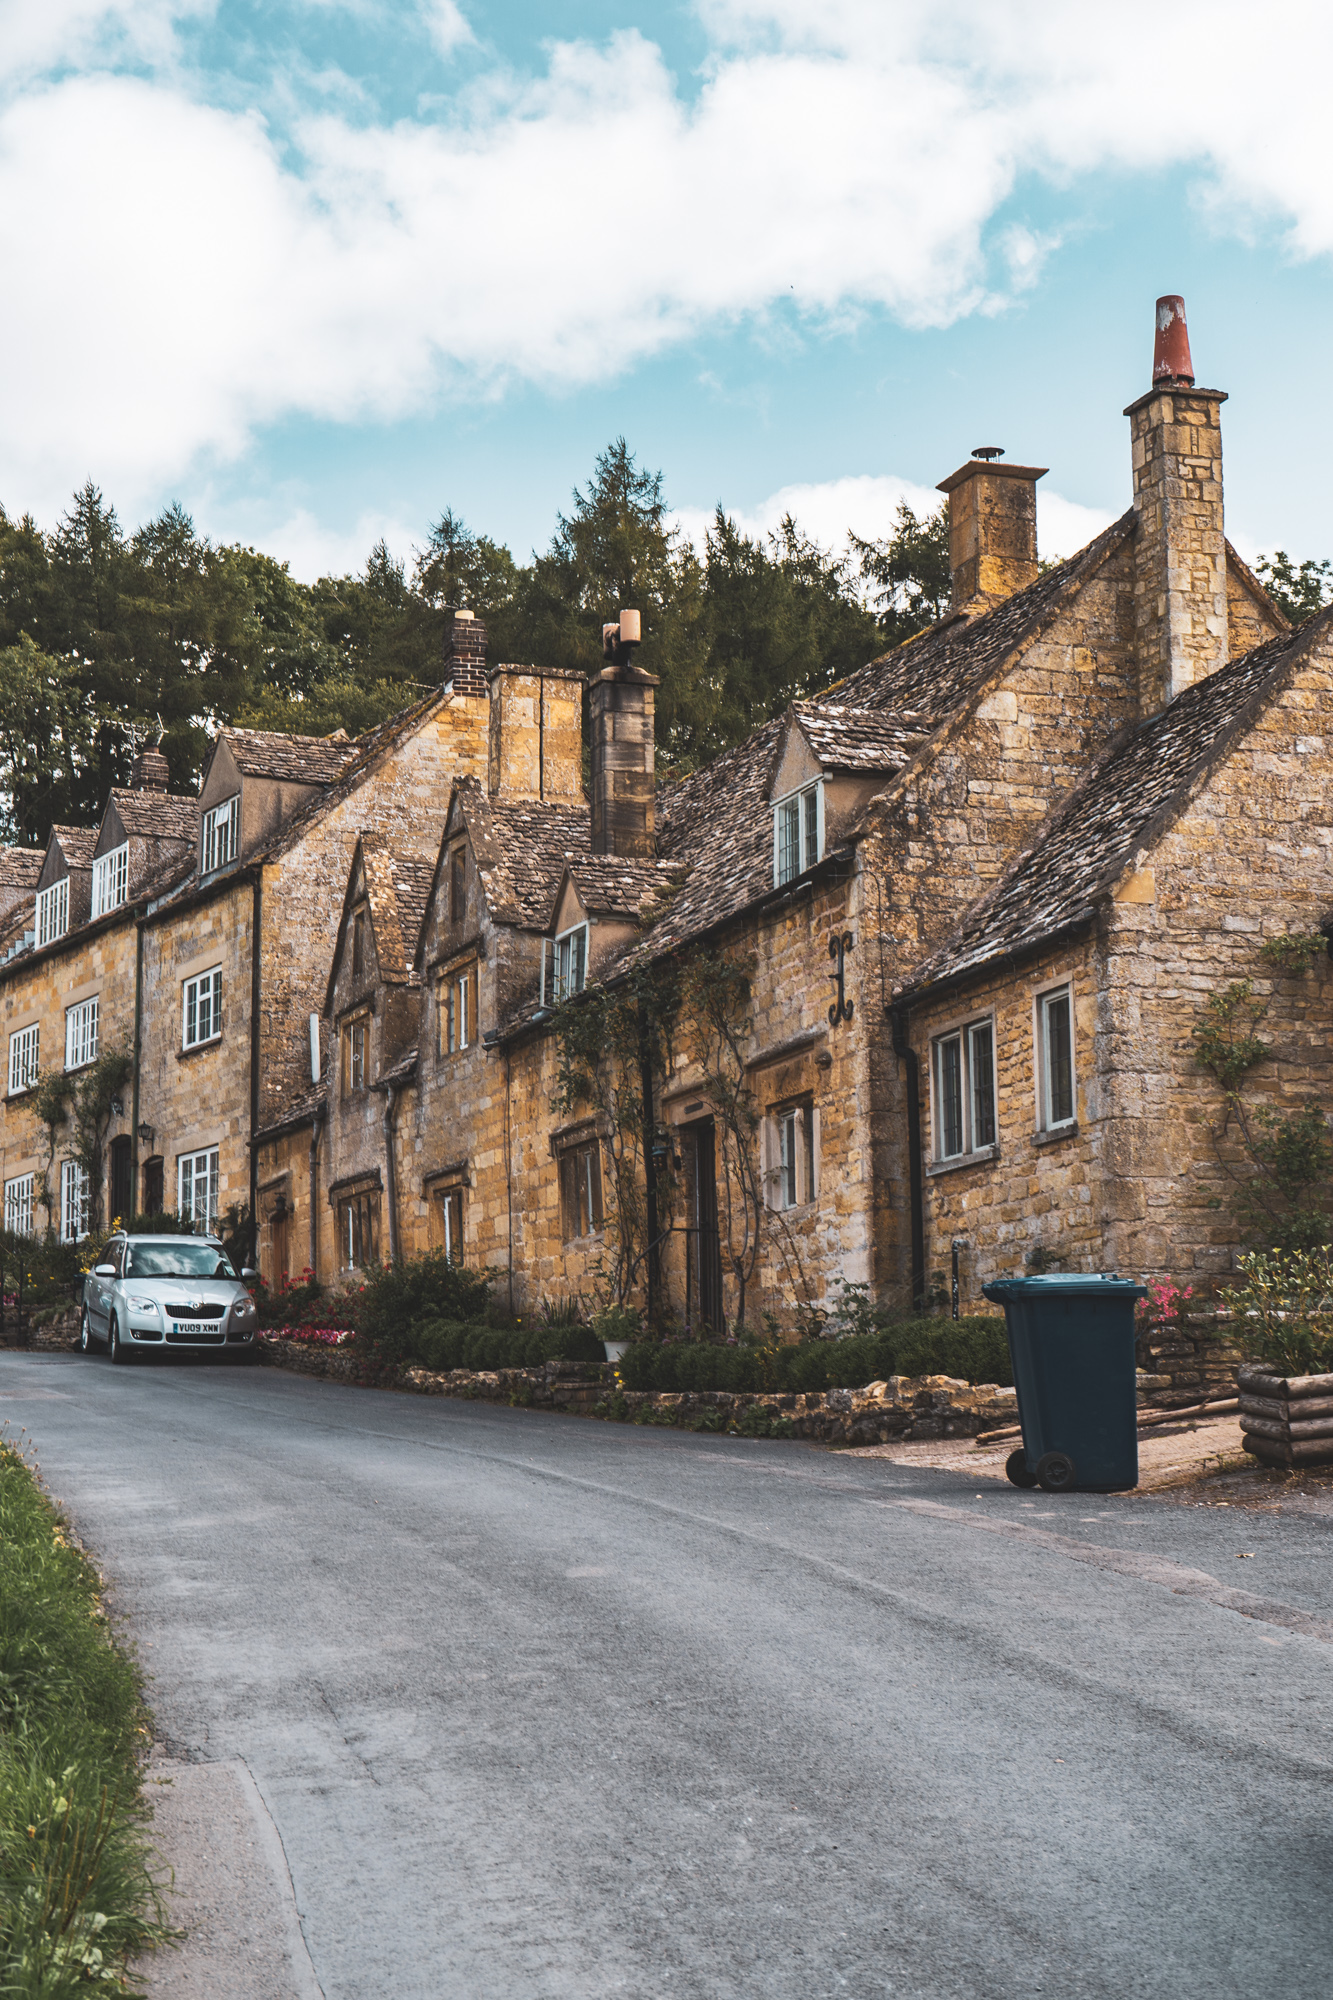 A beautiful row of houses in Snowshill, England.